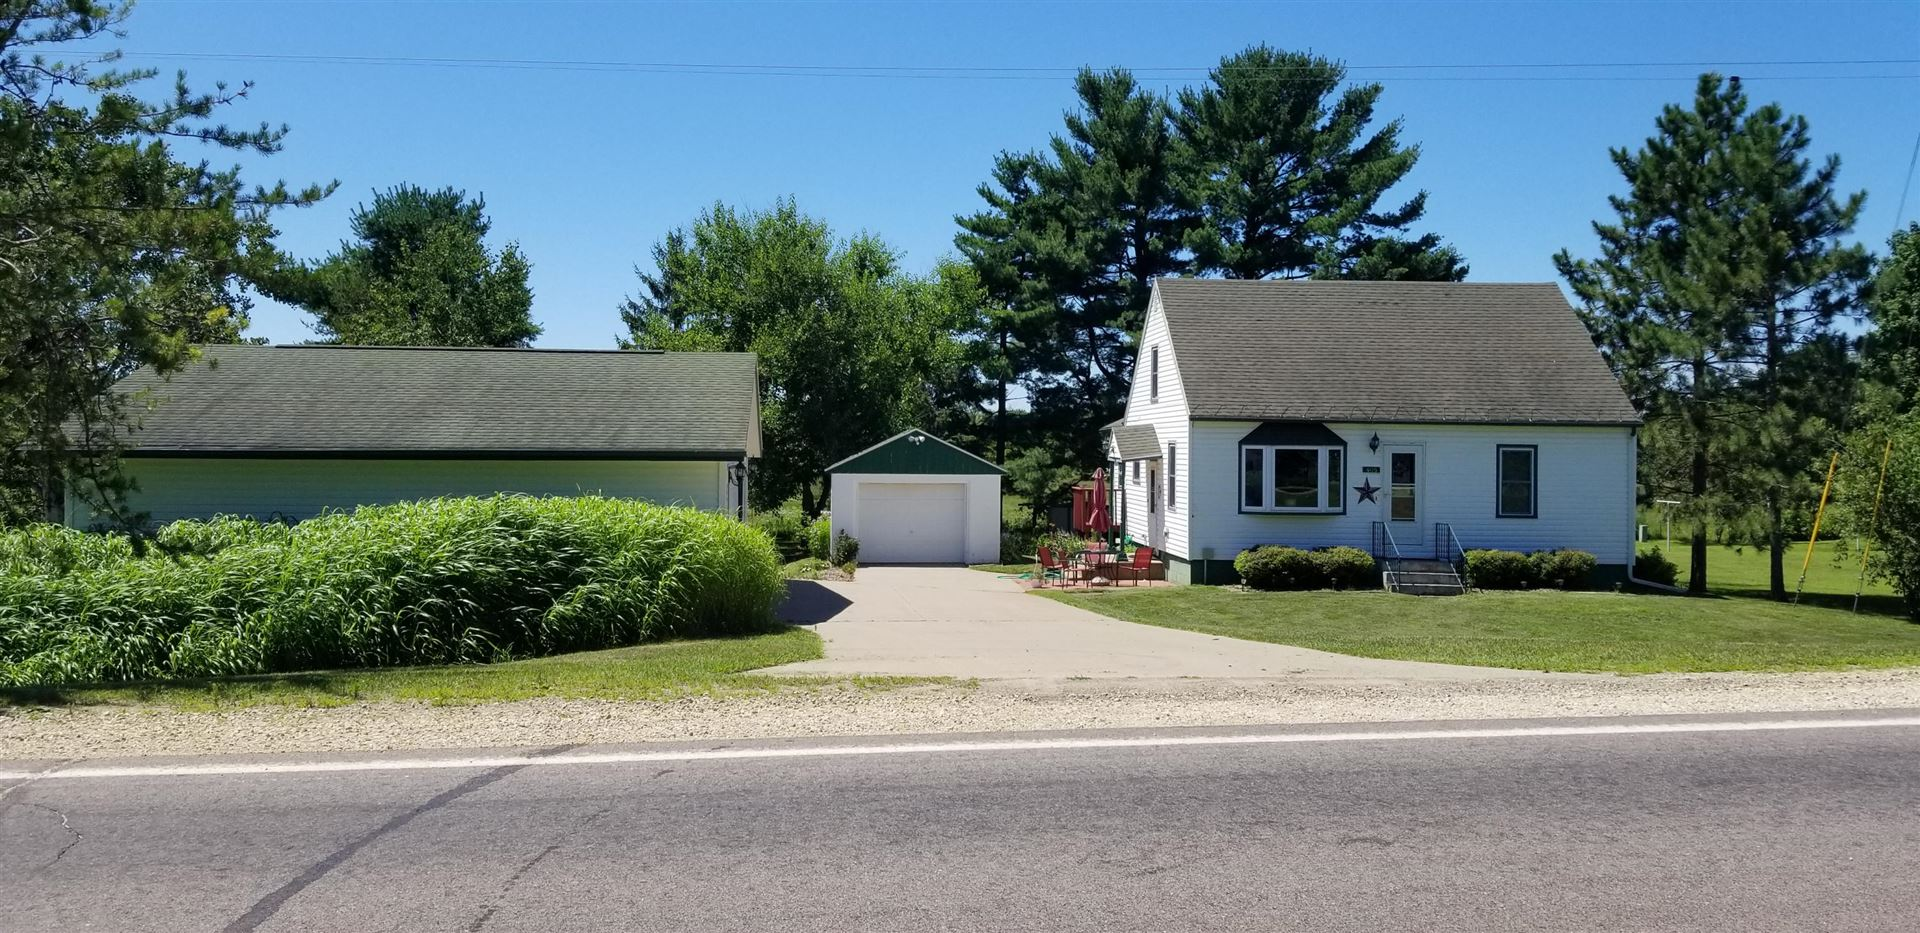 405 Commercial St S, Rockland, WI 54653 - MLS#: 1700486